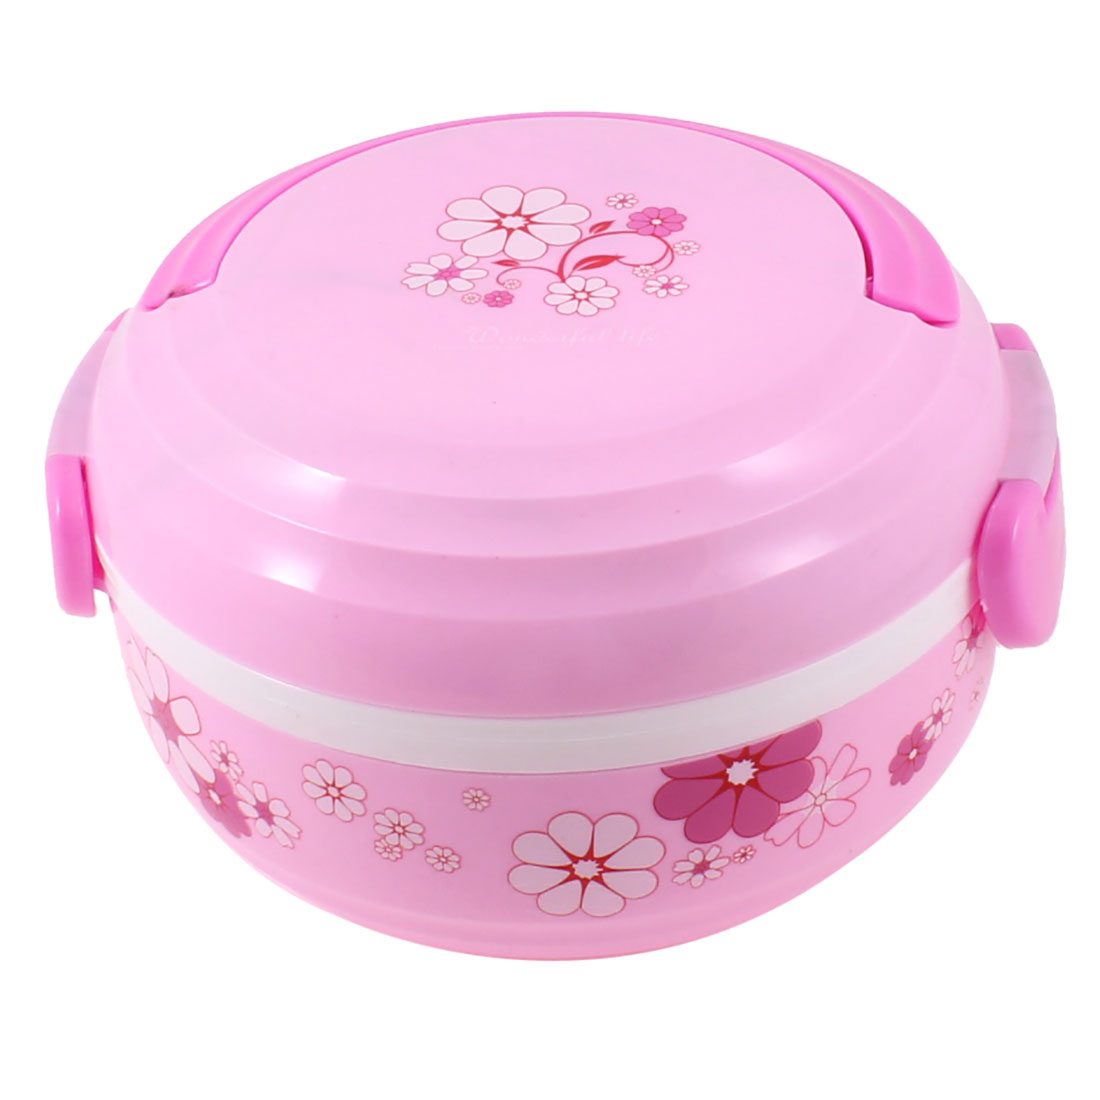 Round Shaped White Pink Plastic Food Dish Container Lunch Box w Spoon